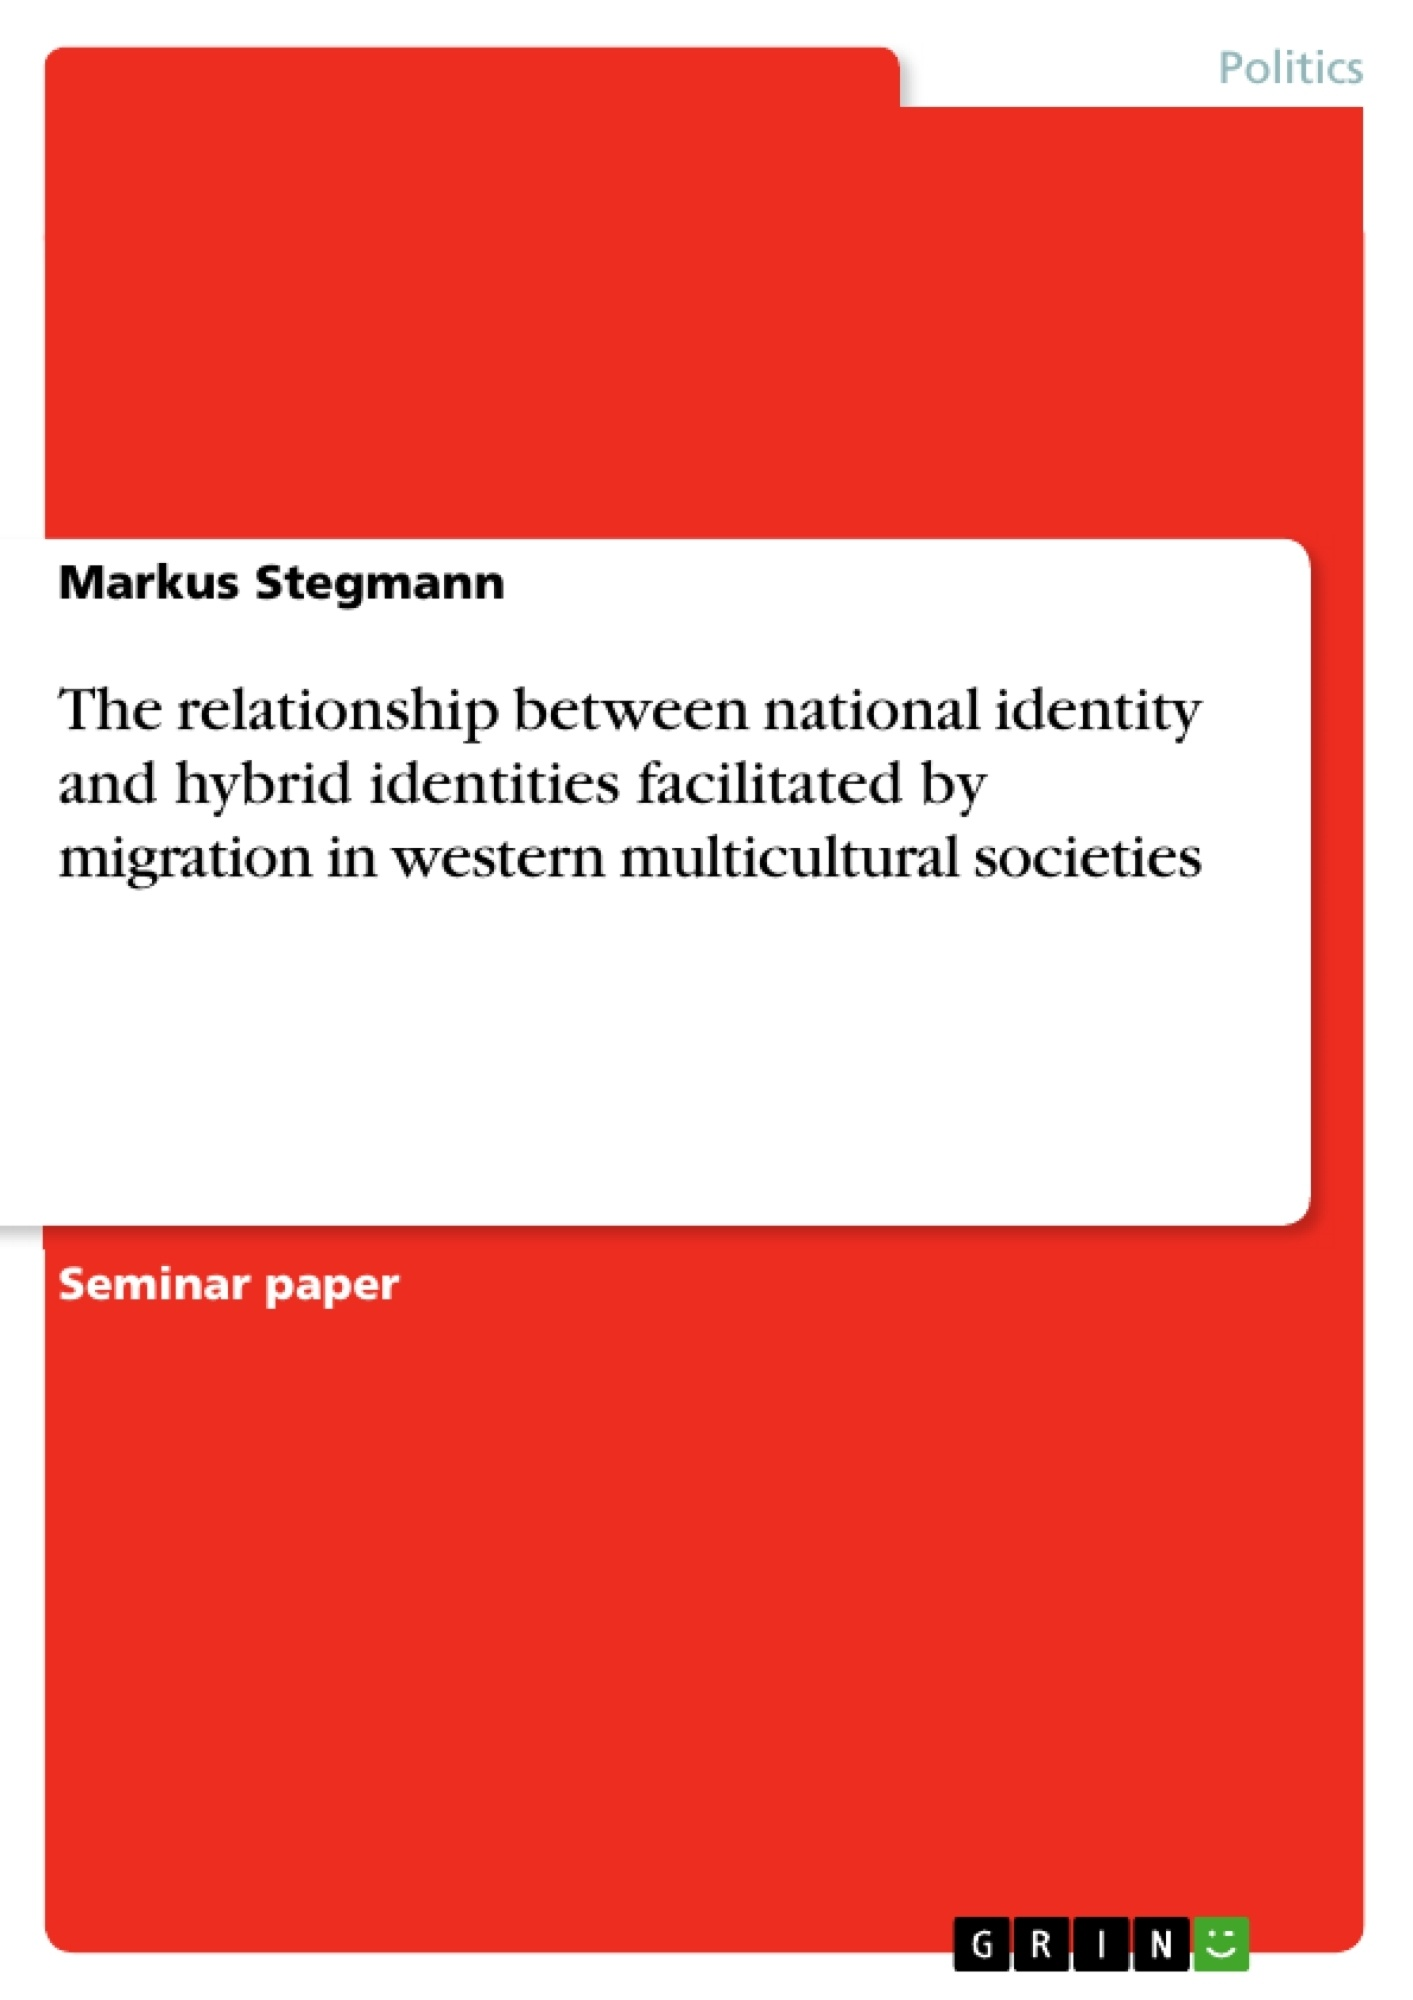 Title: The relationship between national identity and hybrid identities facilitated by migration in western multicultural societies